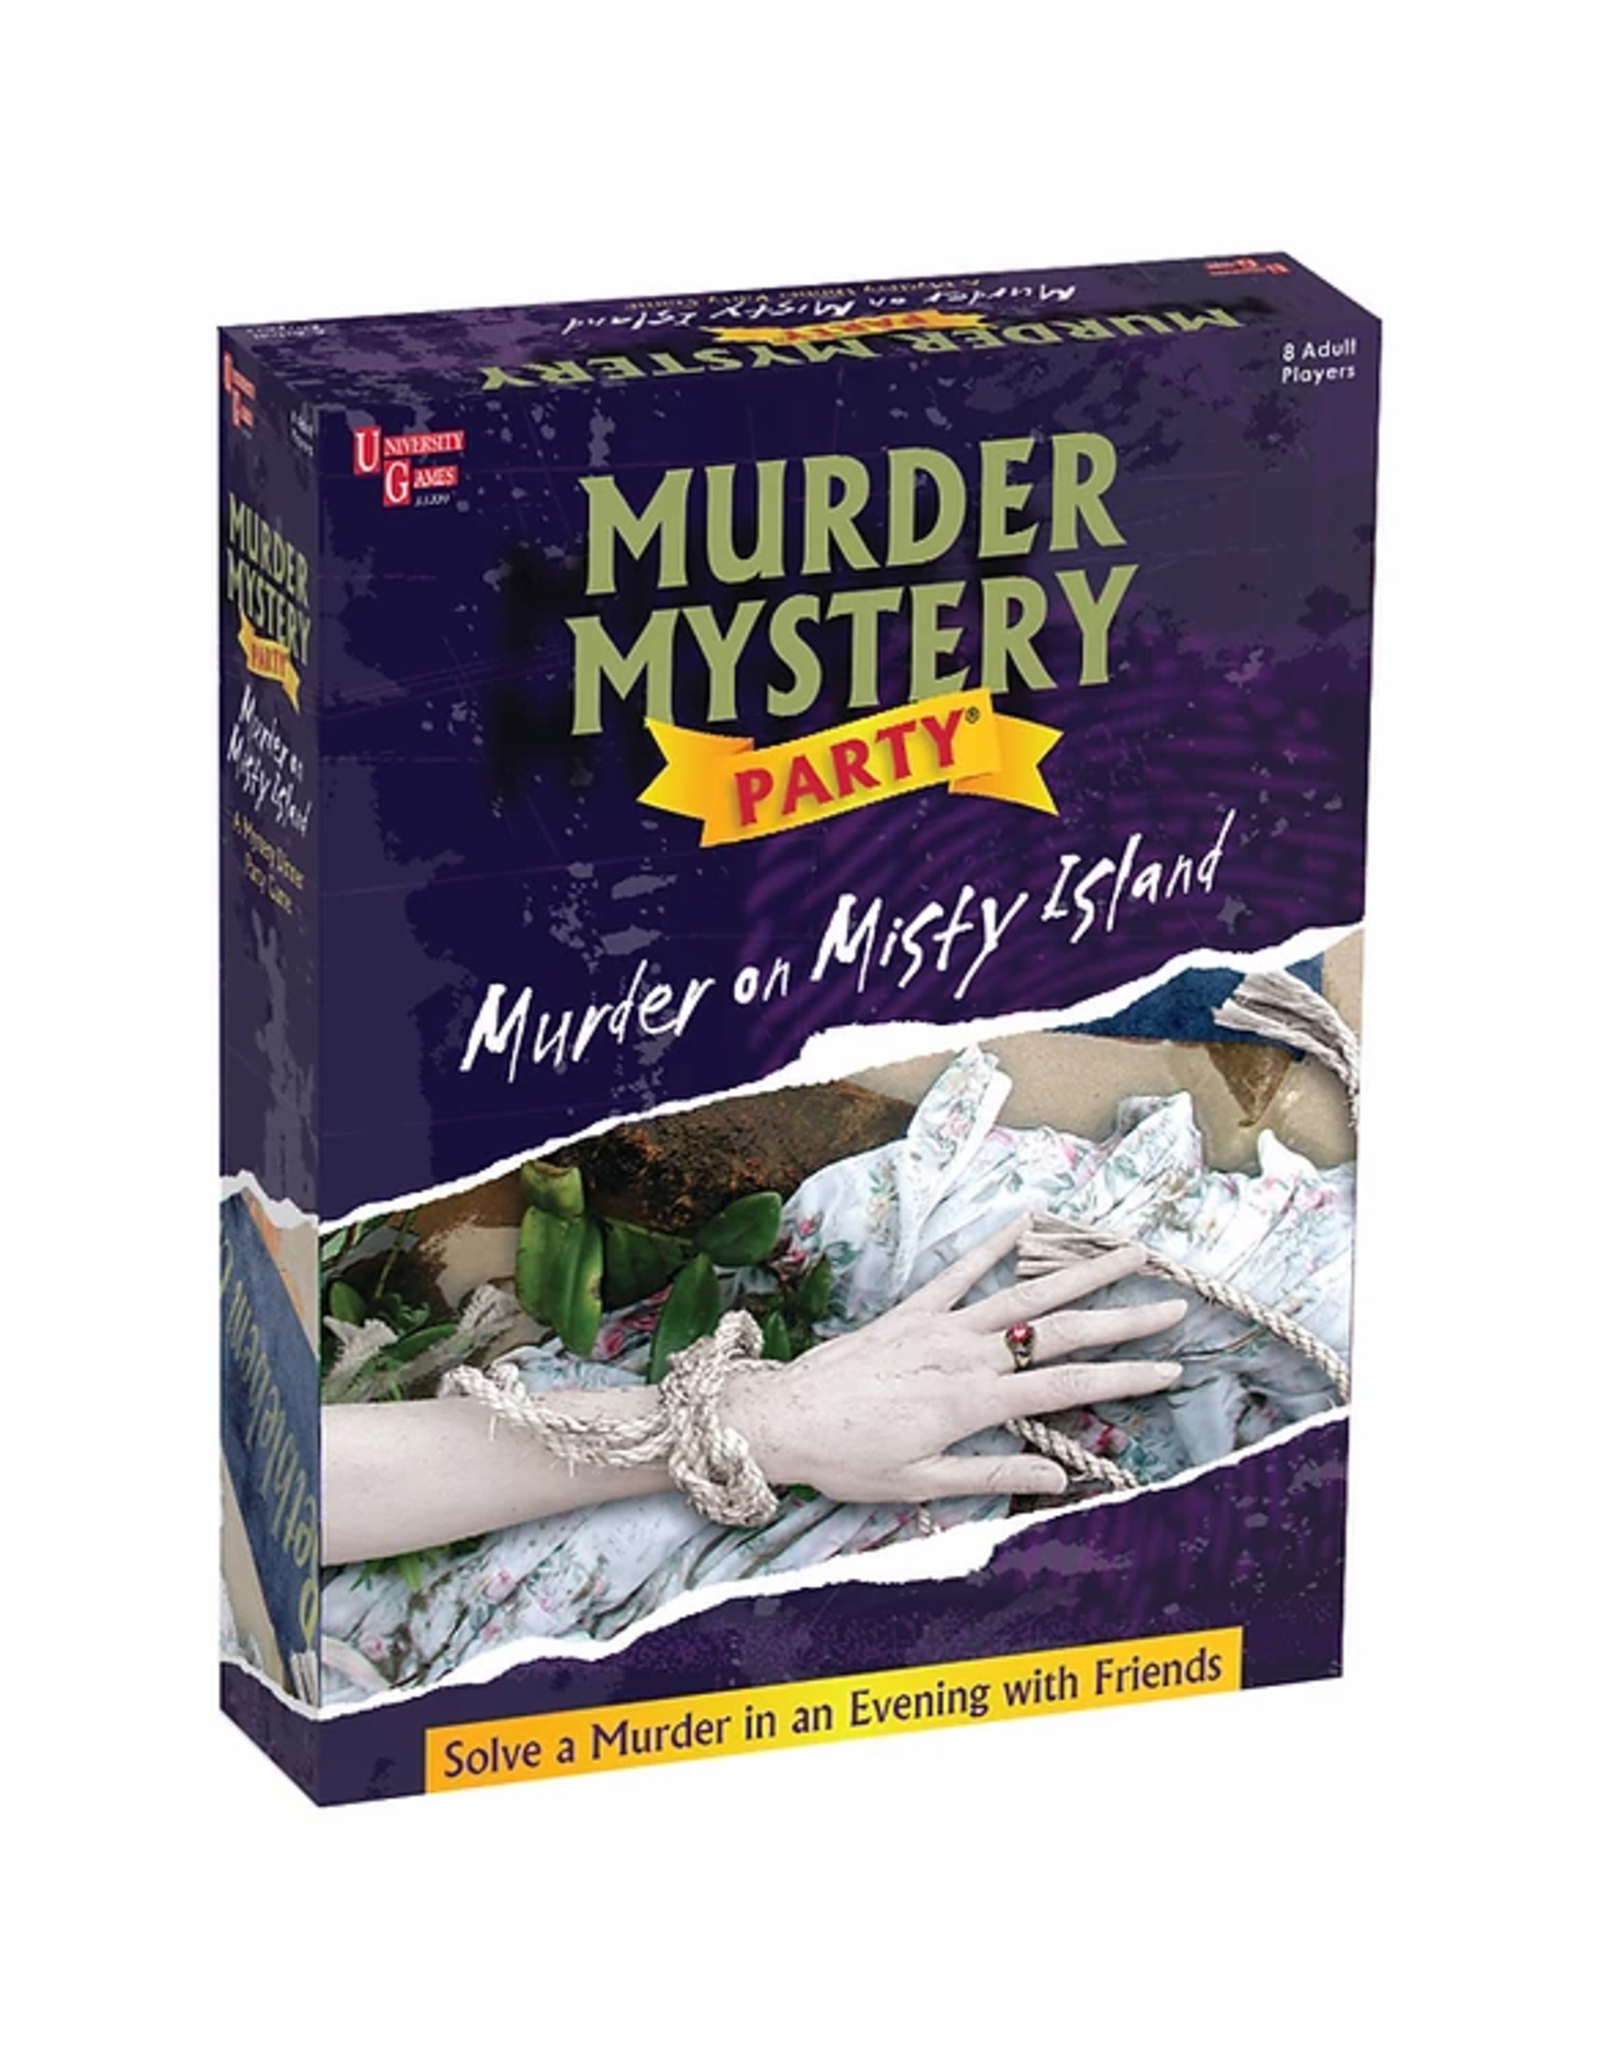 University Games Murder Mystery Party: Murder on Misty Island